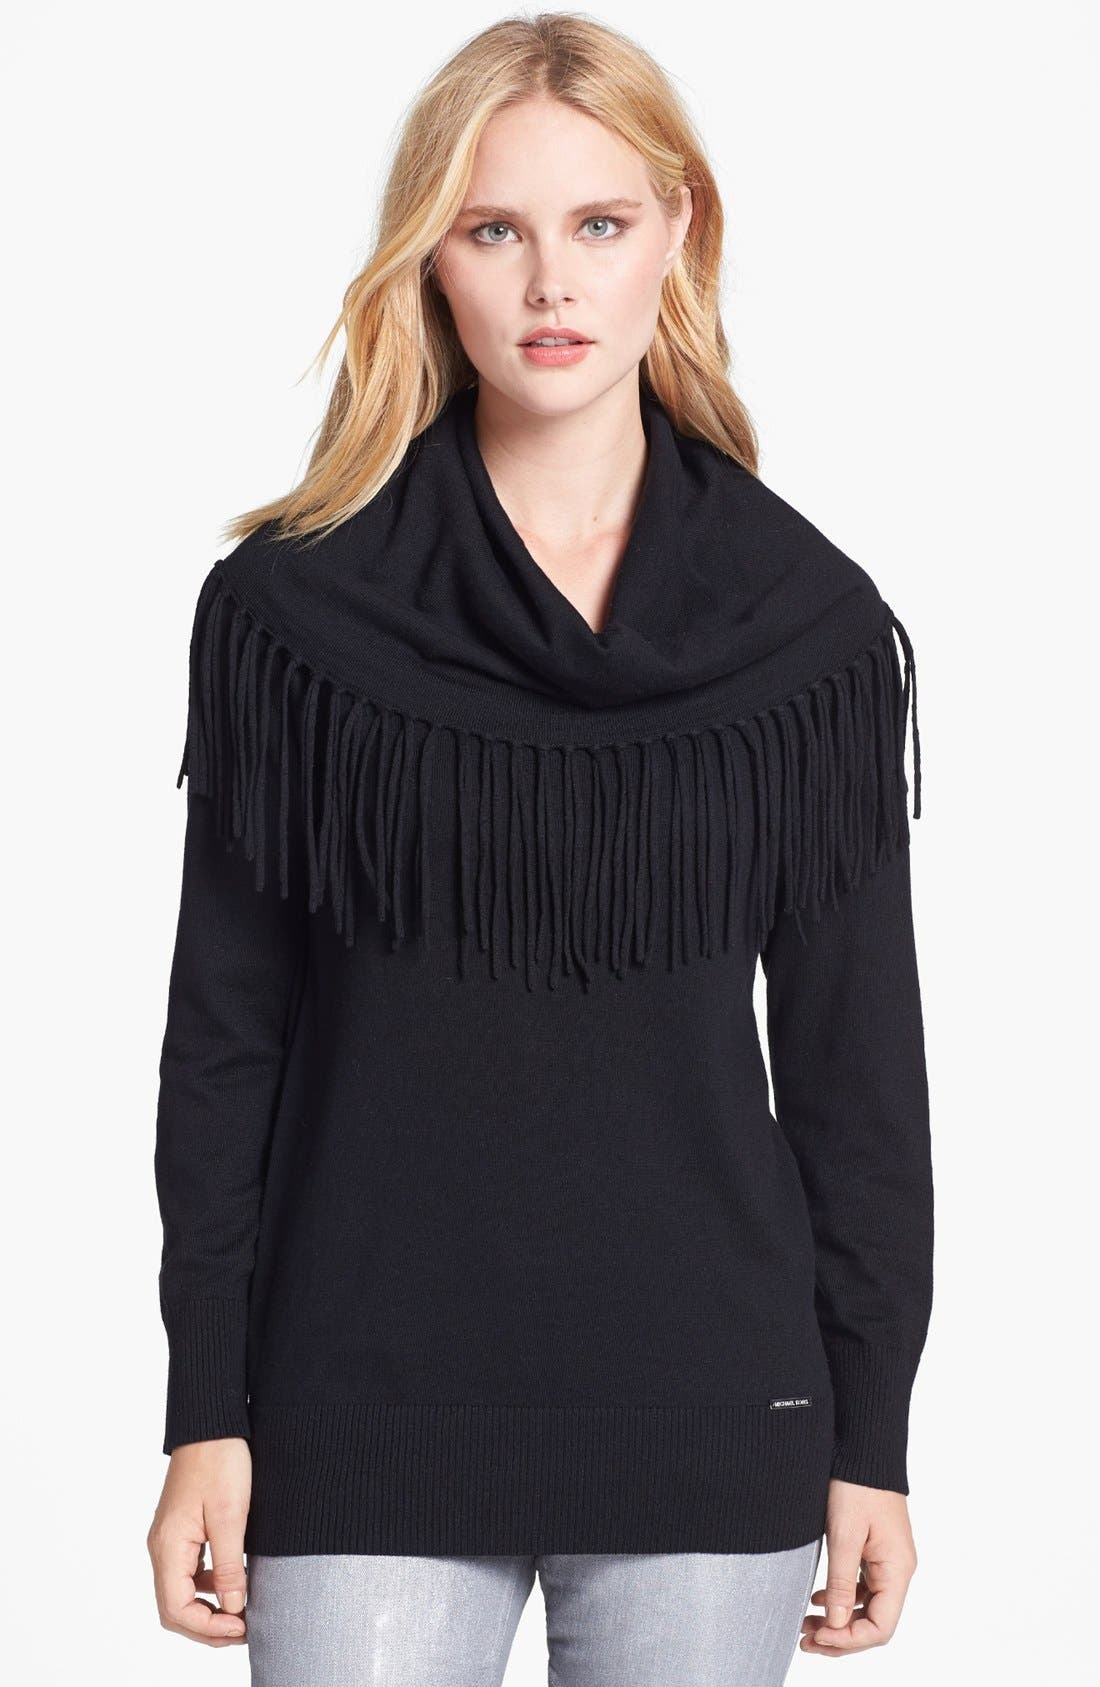 Alternate Image 1 Selected - MICHAEL Michael Kors Fringe Cowl Neck Sweater (Petite)